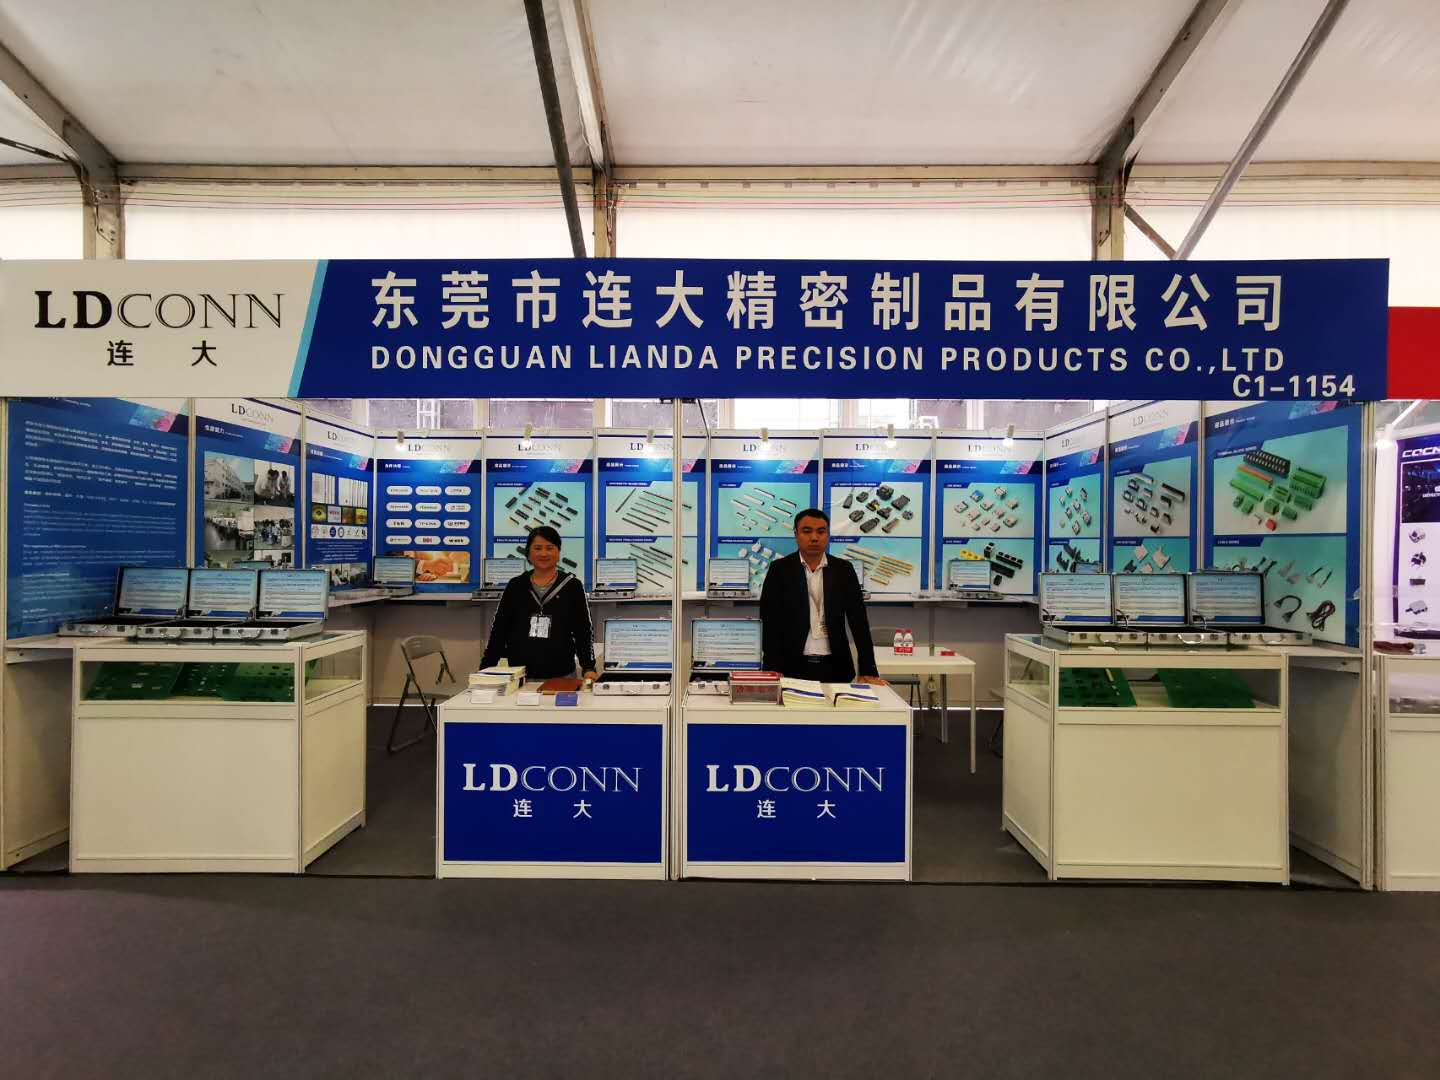 From 03.20th to 03.22nd, 2019, Dongguan Lianda Precision Products Co., Ltd